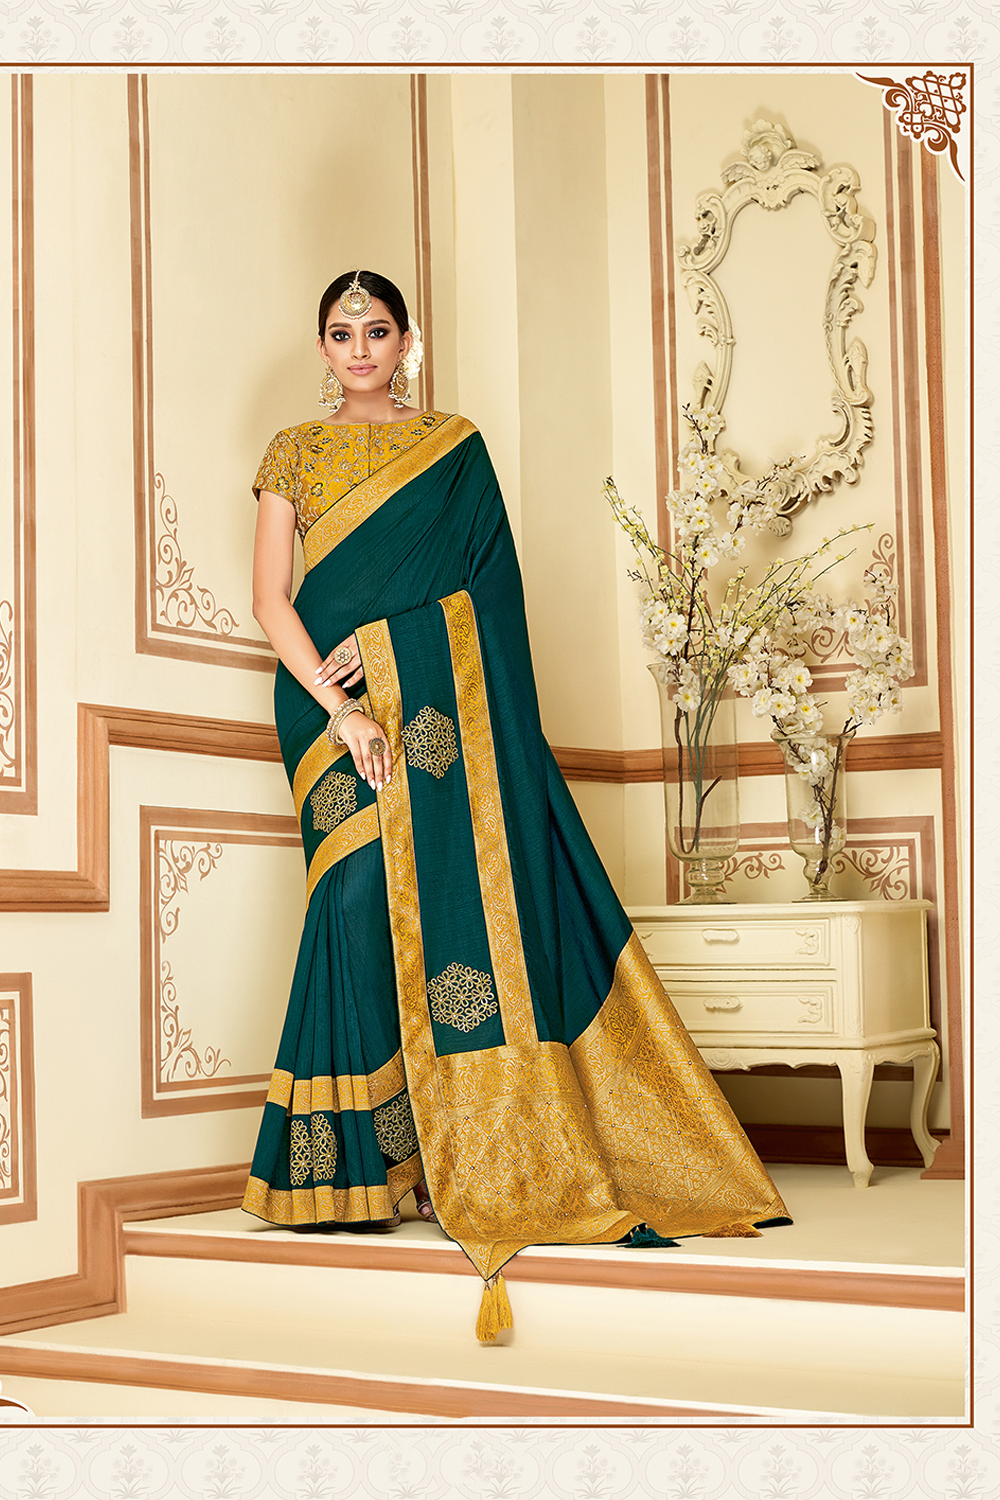 Floral embroideries and styled with laser-cut details saree